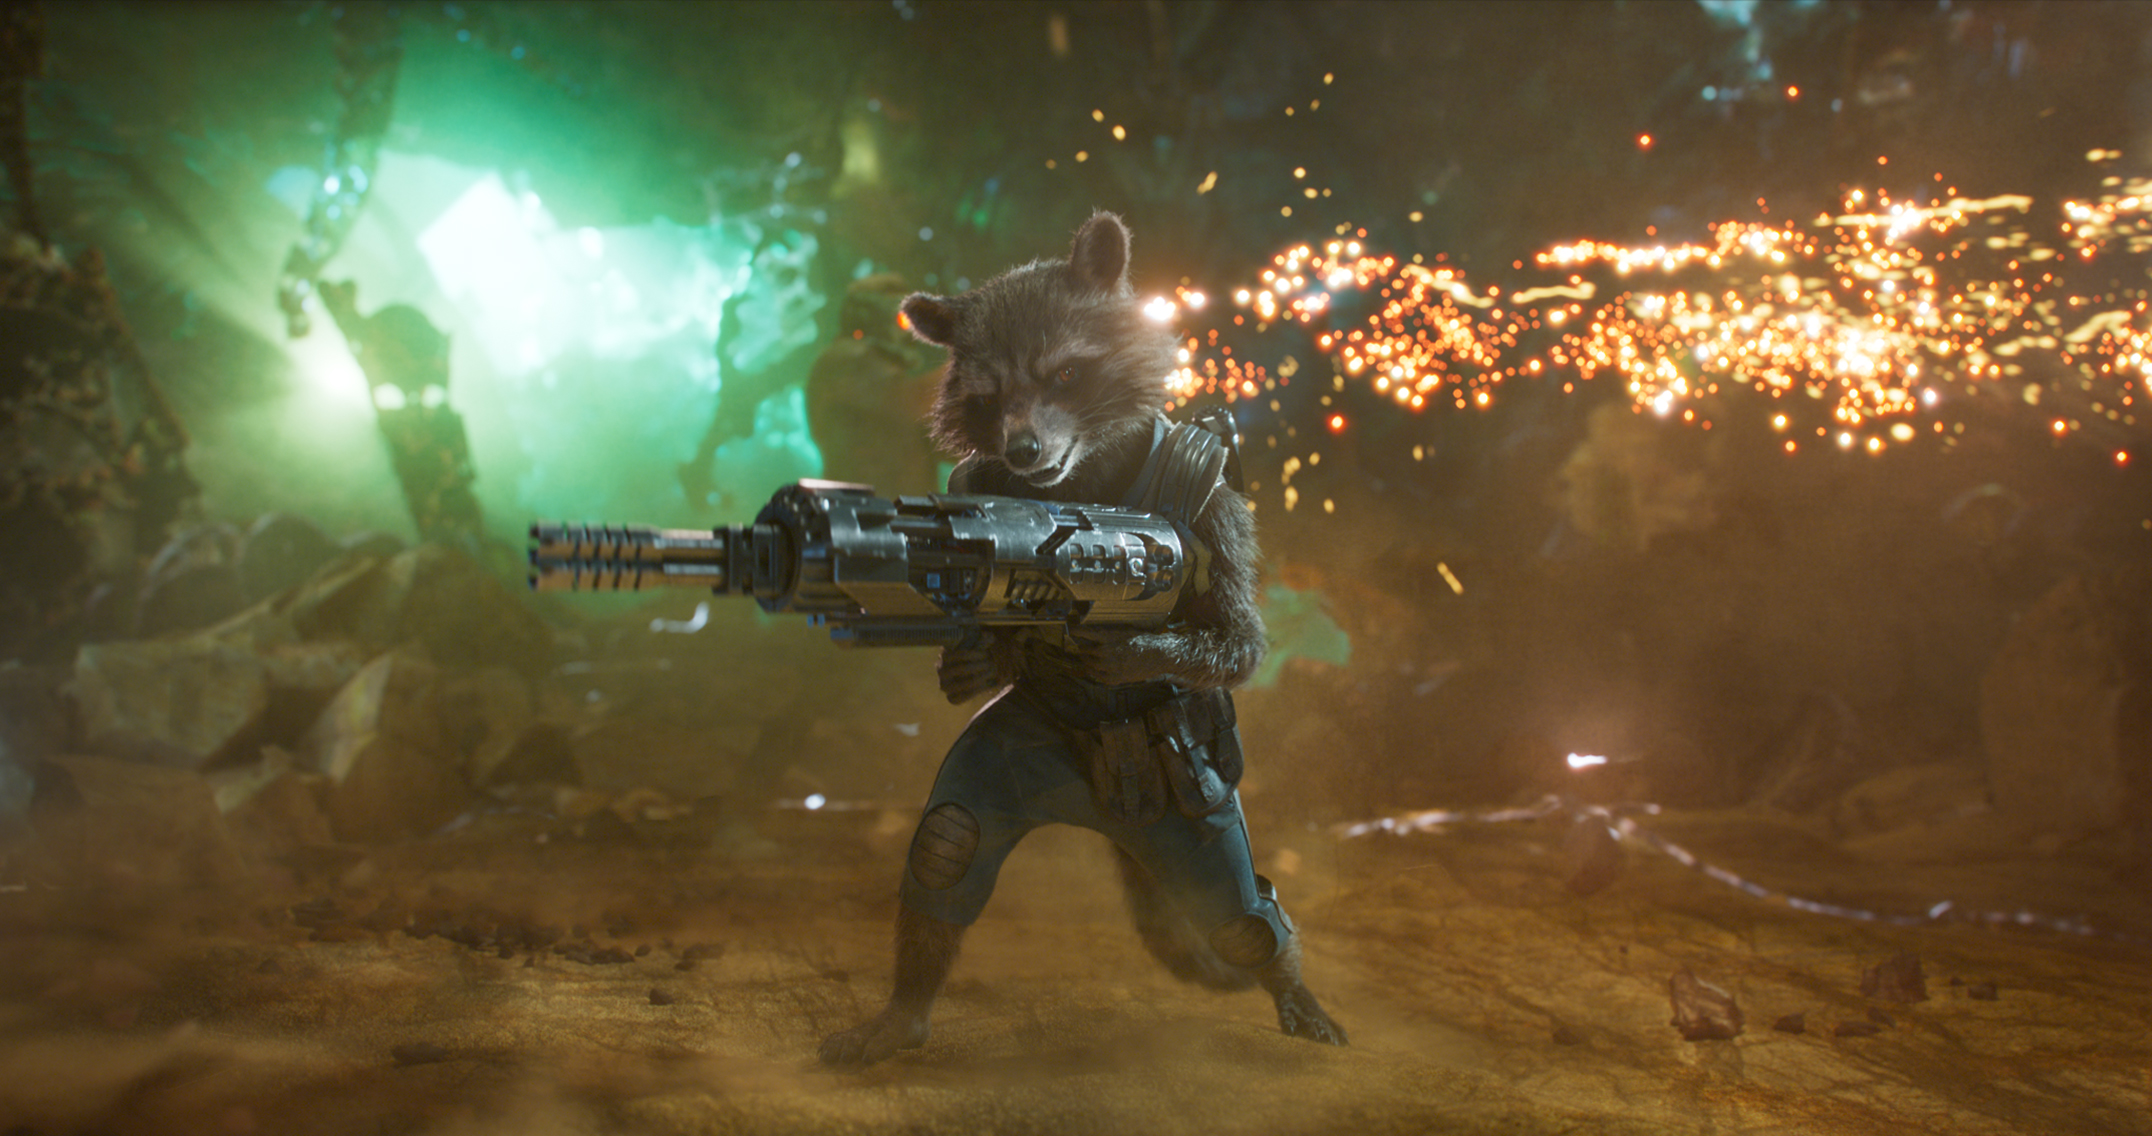 Guardians Of The Galaxy Vol 2 Trailer Analysis Laughingplacecom